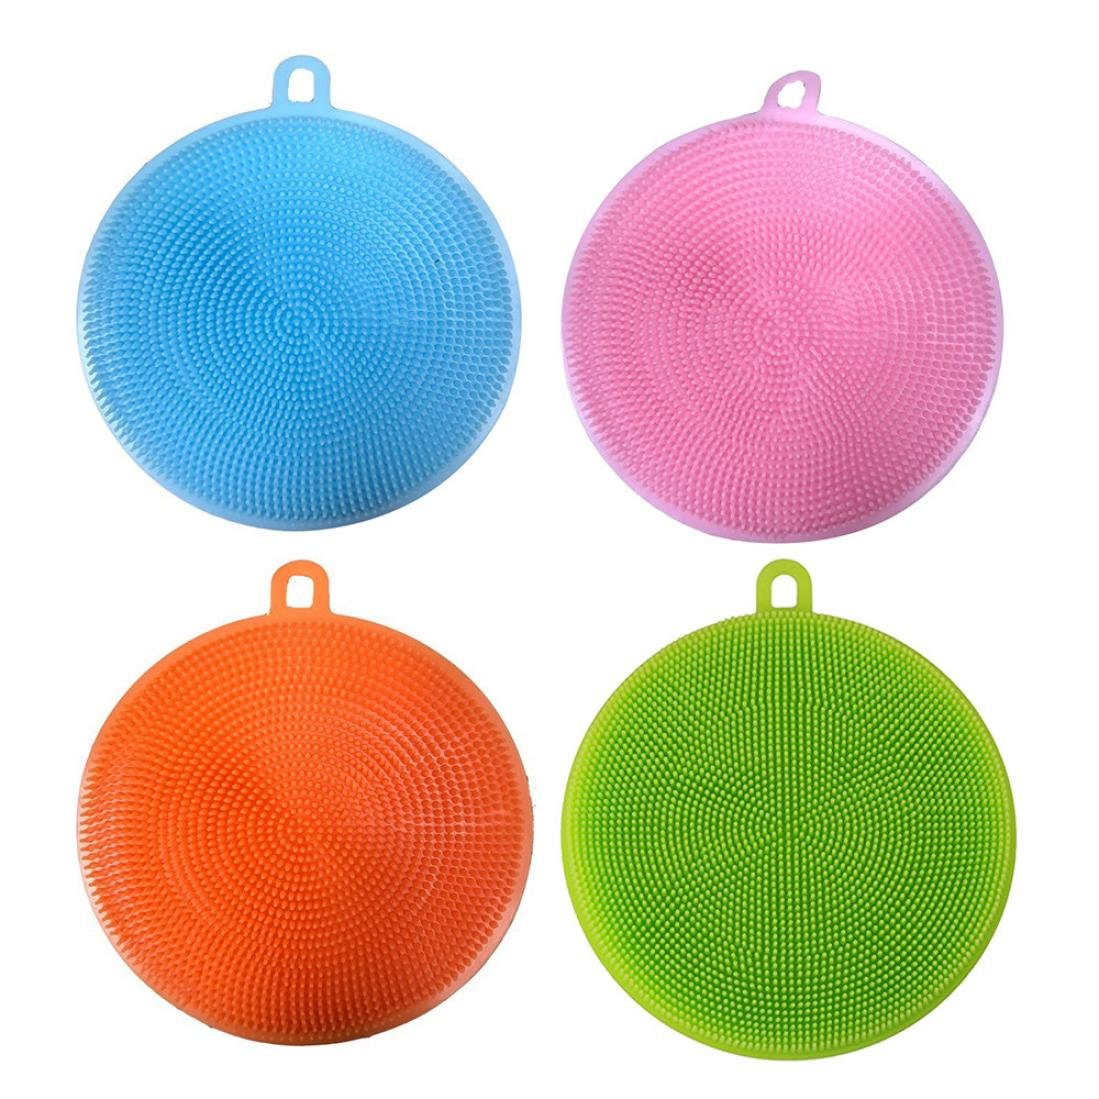 NXDA Pack of 4 Silicone Dish Washing Sponge Scrubber Kitchen Cleaning Antibacterial Tool, 14X13X2CM (4)